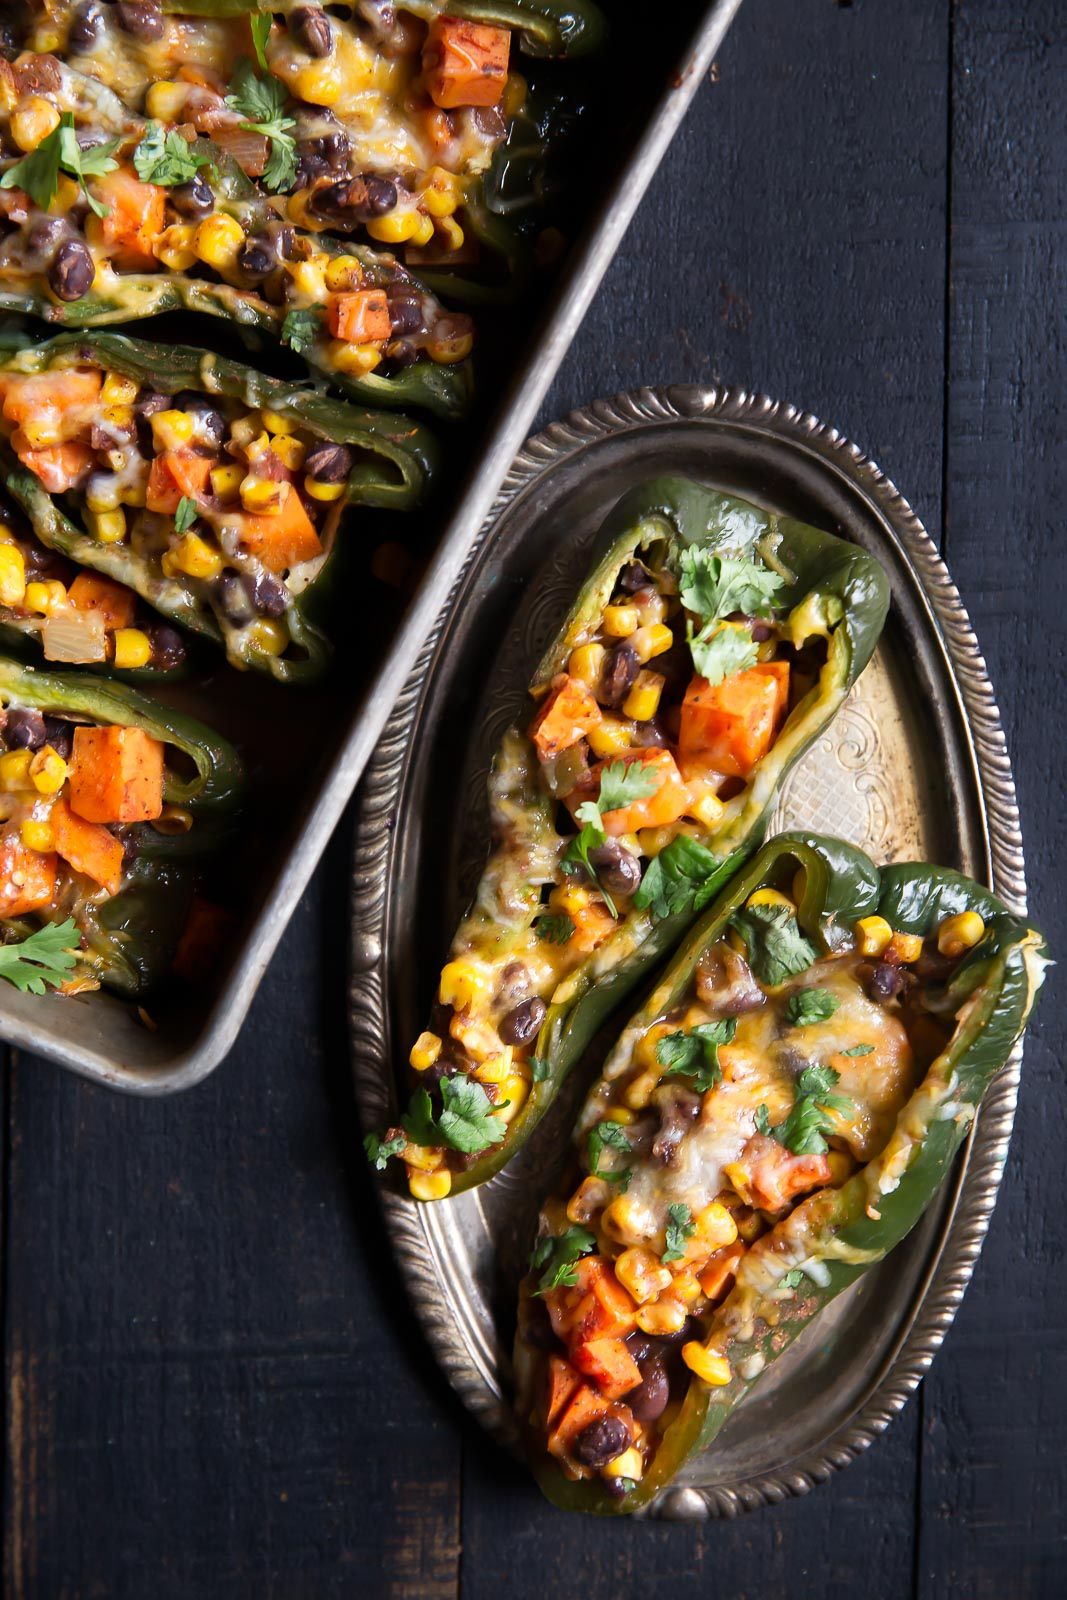 Two poblano peppers stuffed with vegetables and cheese on a small silver platter